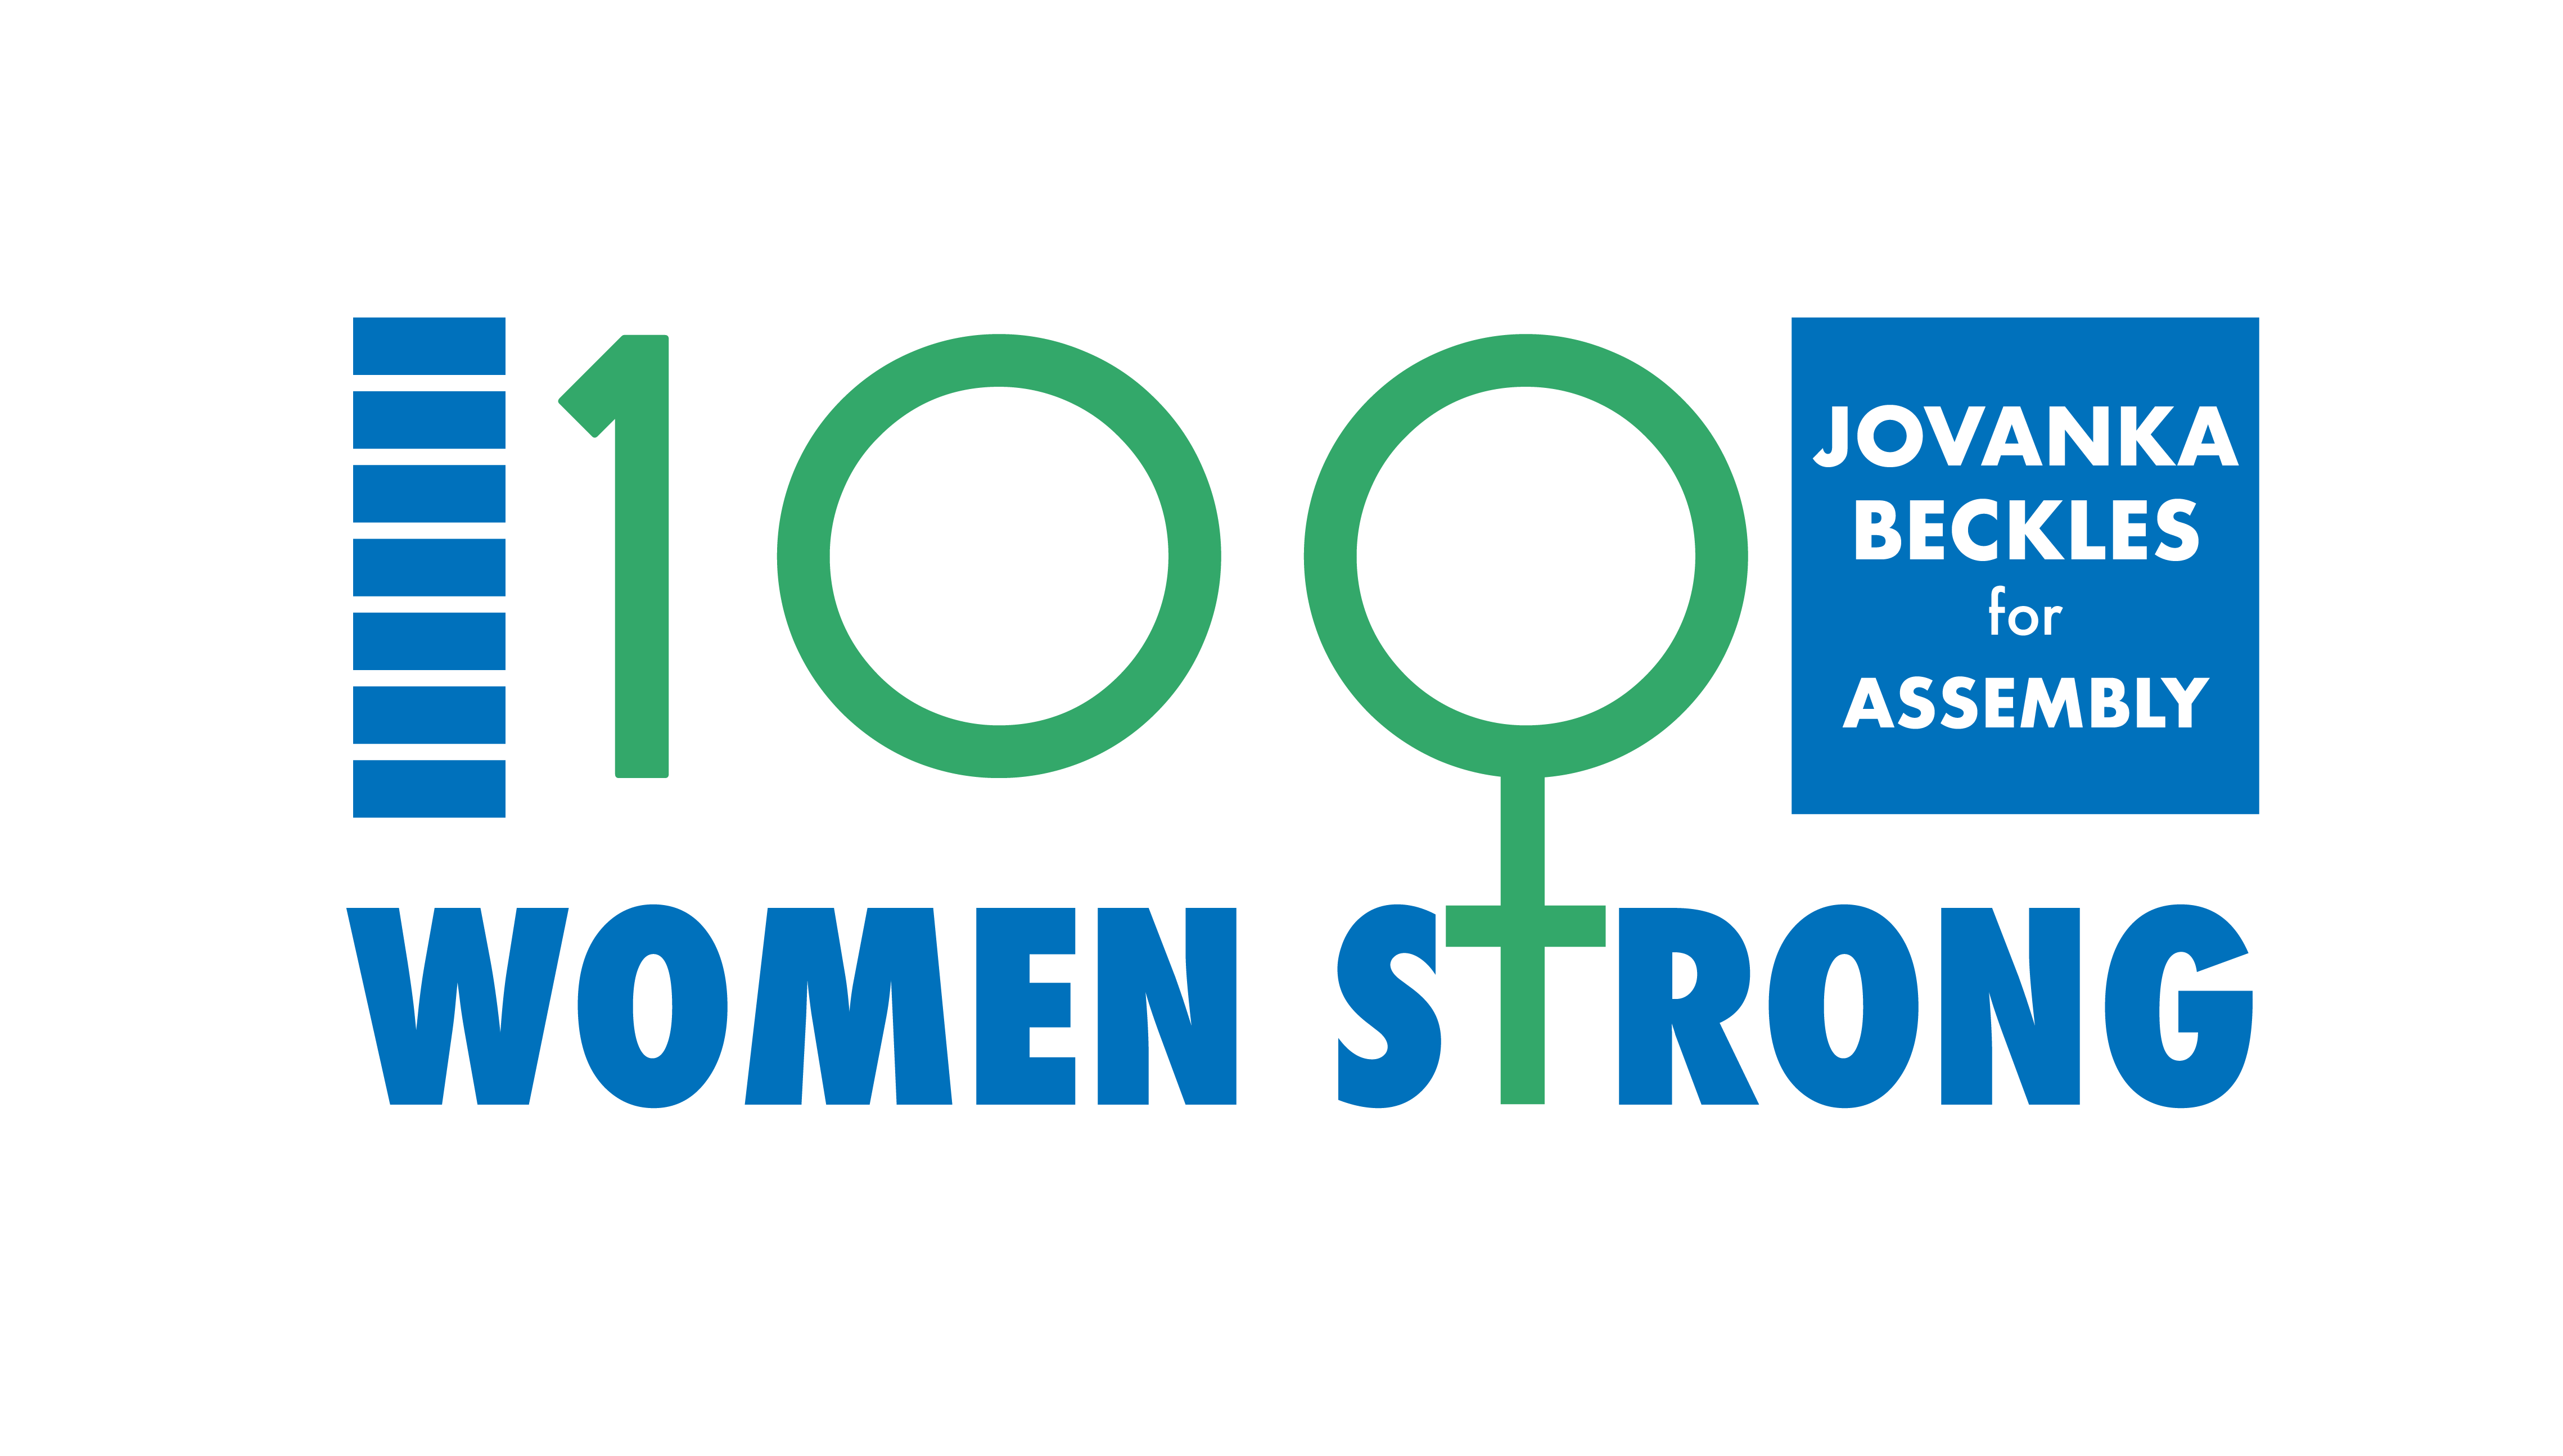 Join 100 Women Strong!